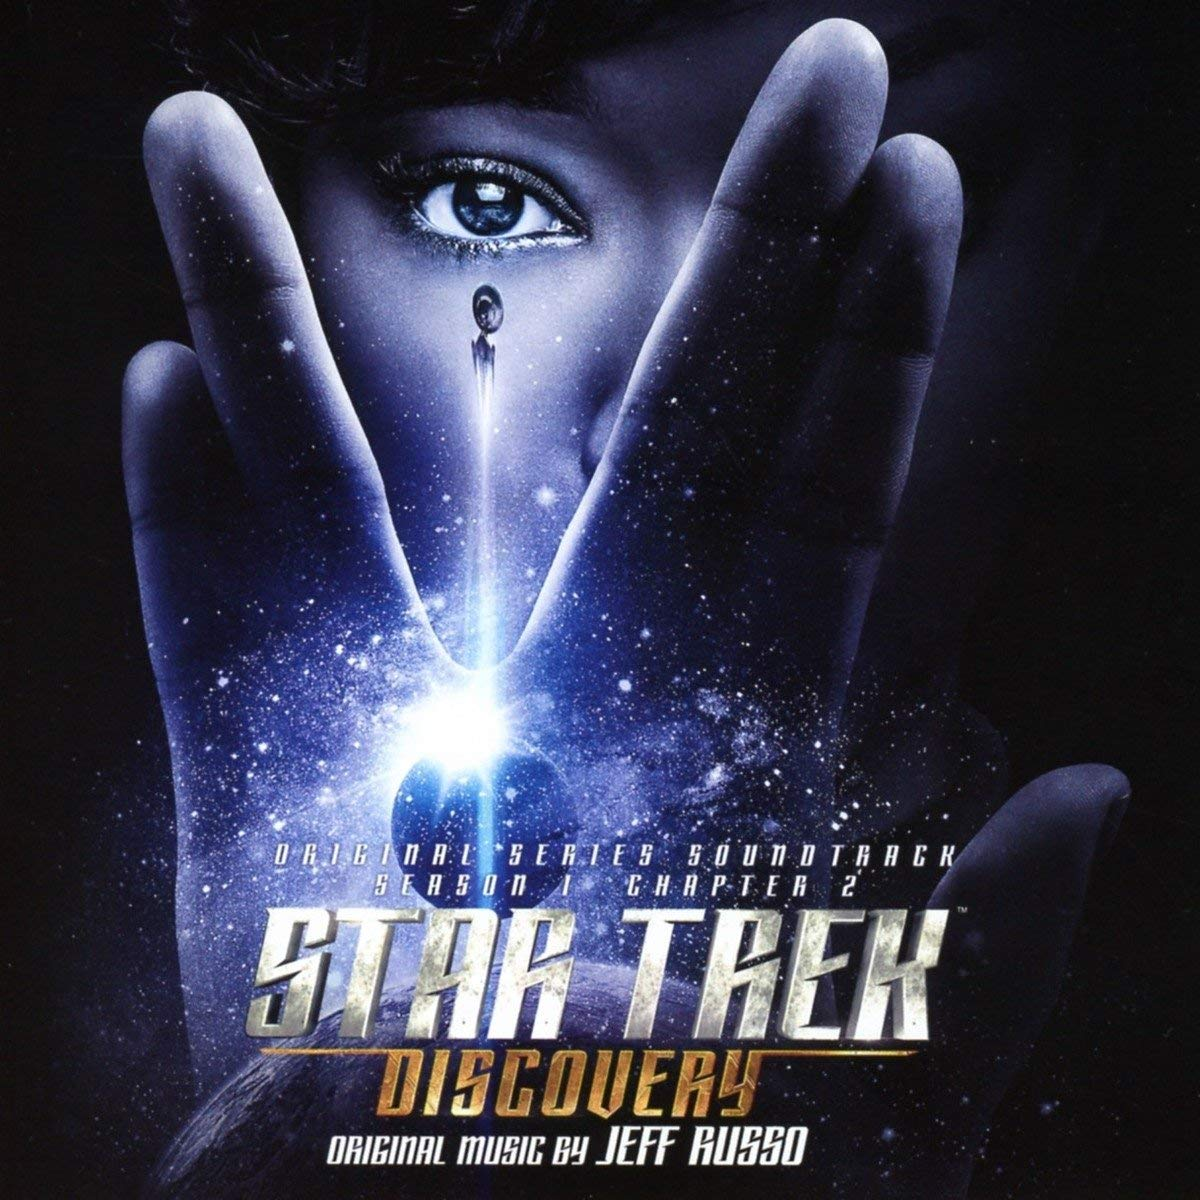 Jeff Russo - Star Trek: Discovery Season 1 Chapter 2 Original Soundtrack [Import]